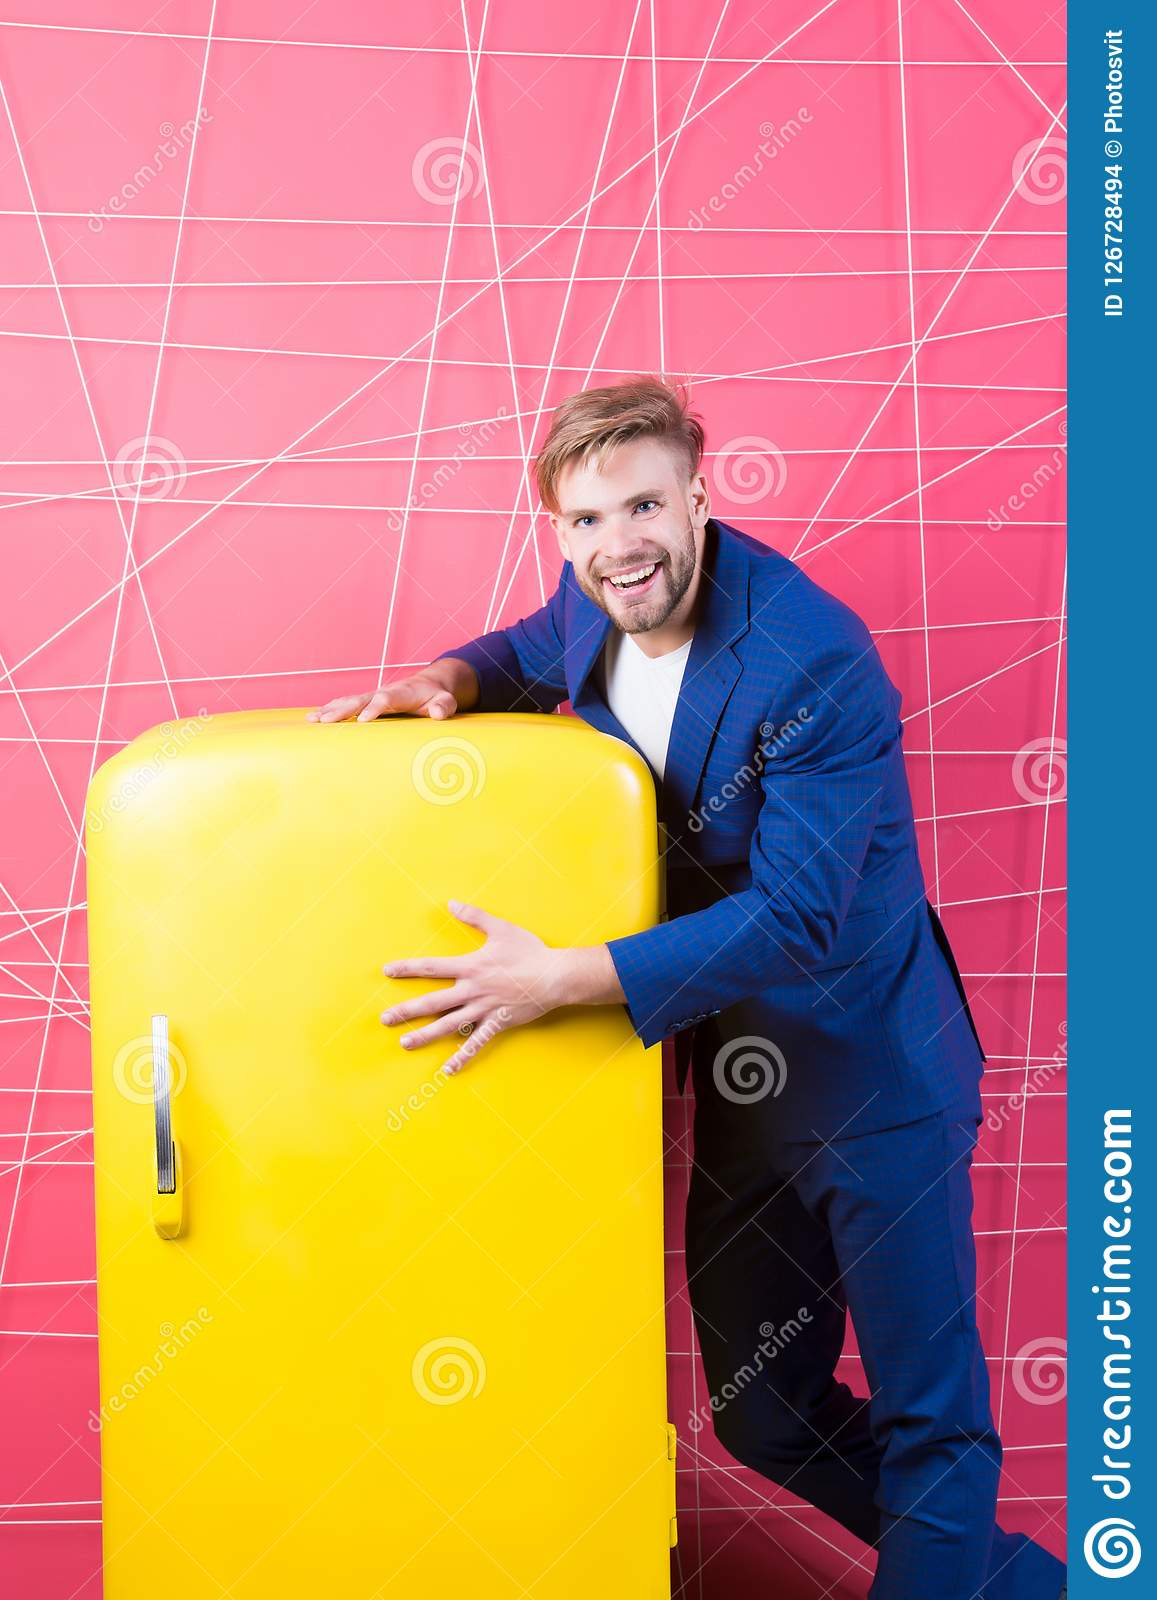 Man formal elegant suit stand near retro vintage yellow refrigerator. Vintage household appliances. Bachelor hungry guy. Think what eat near fridge. Bright Stock Images